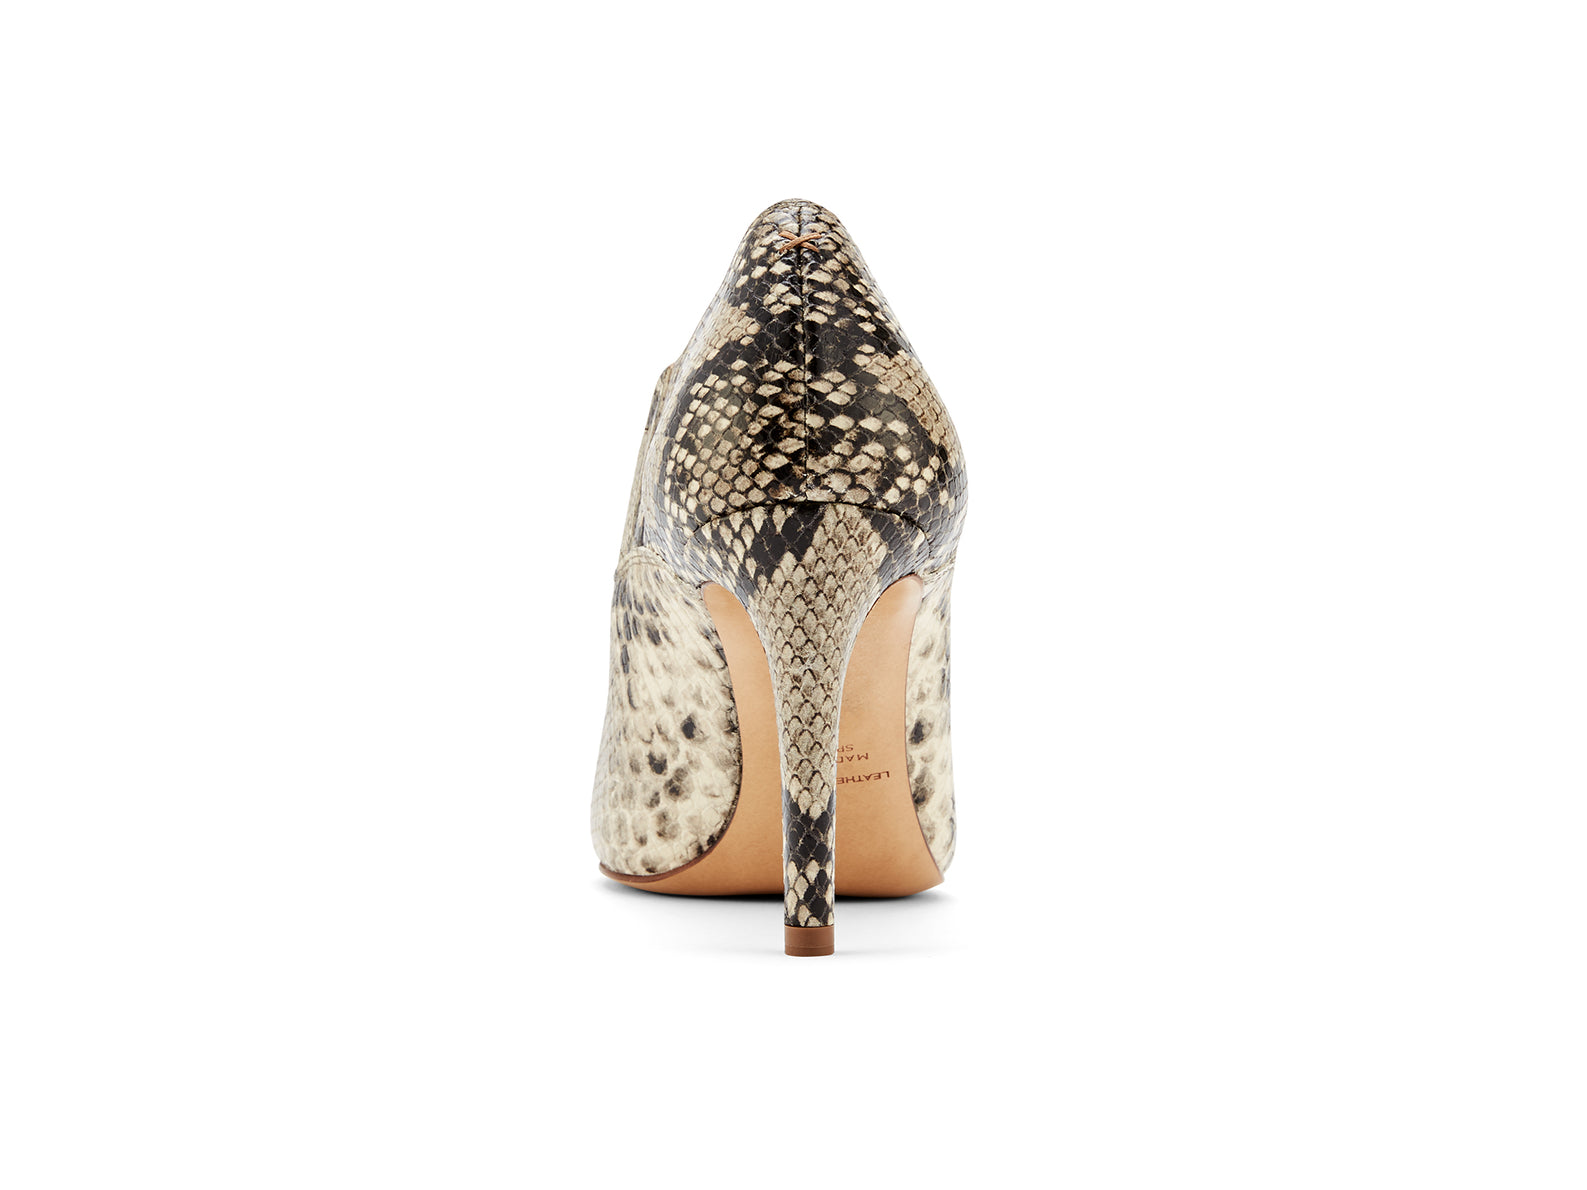 INEZ shoes Marisol low-cut heel bootie in natural snake emboss leather